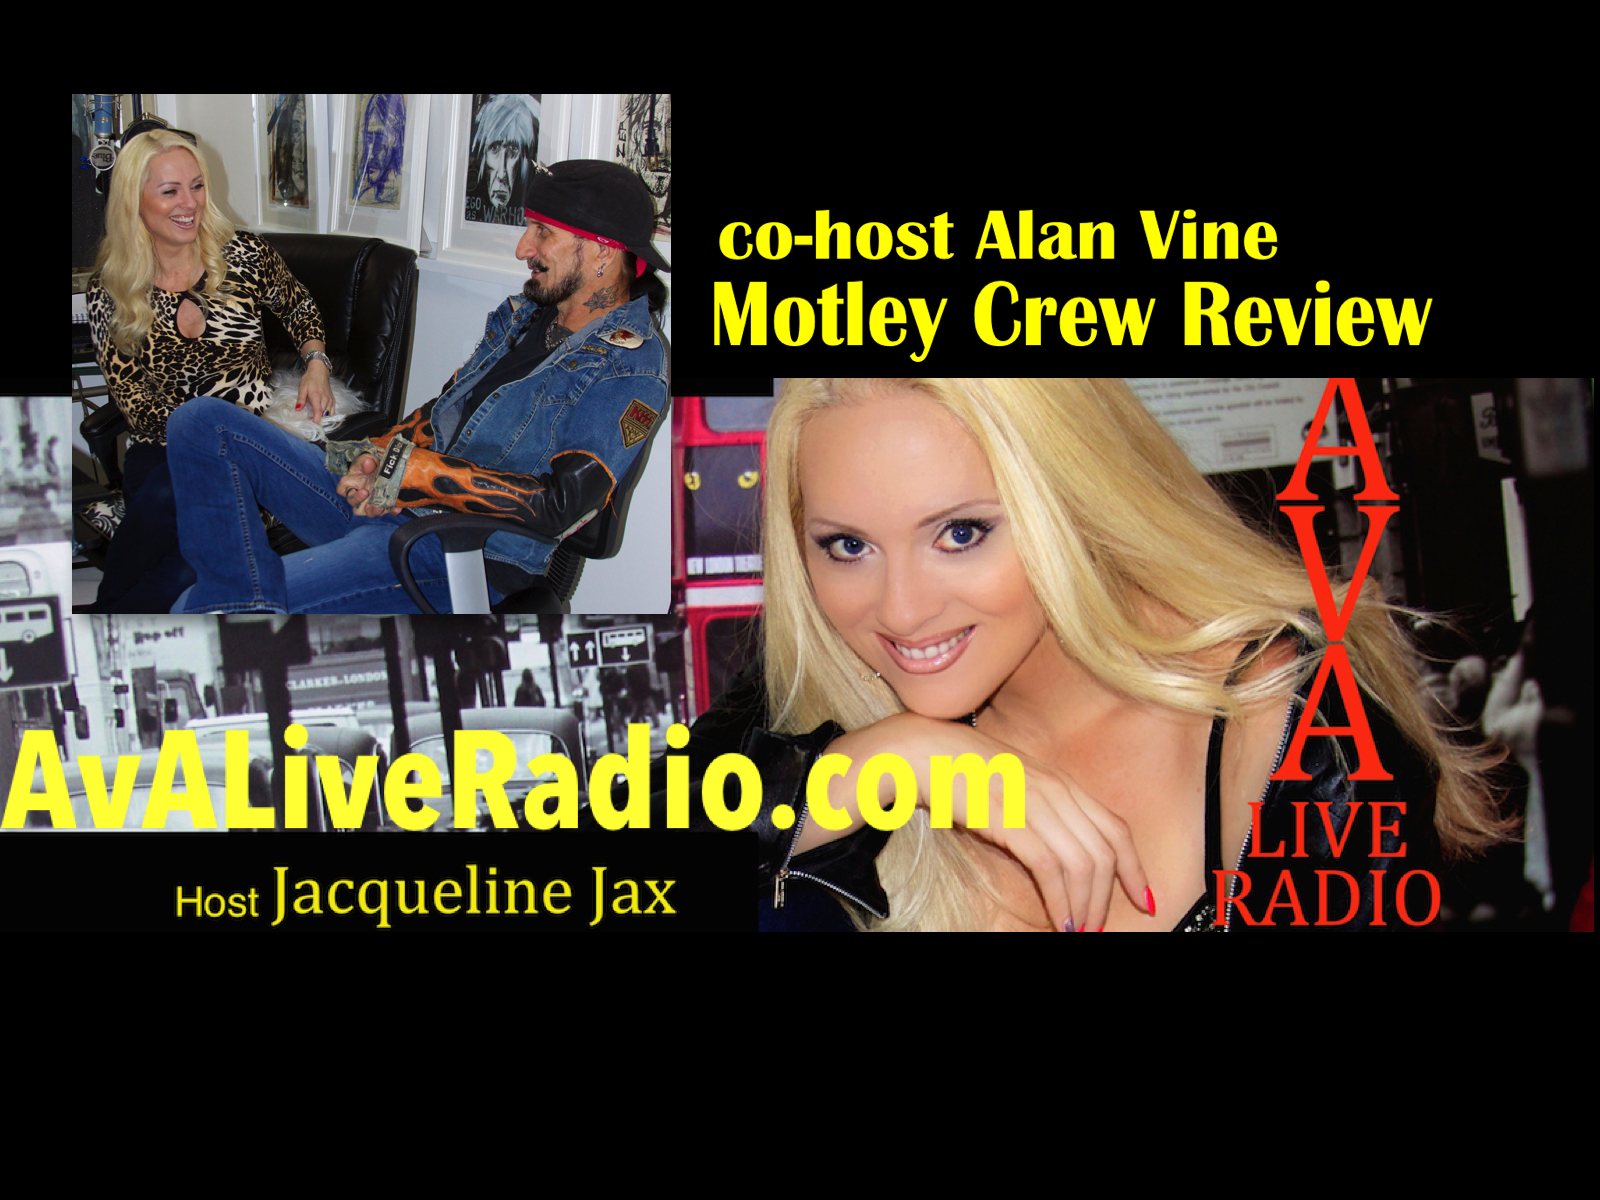 {Behind The Music with Jacqueline Jax} co-host Alan Vine Talks Motley Crew